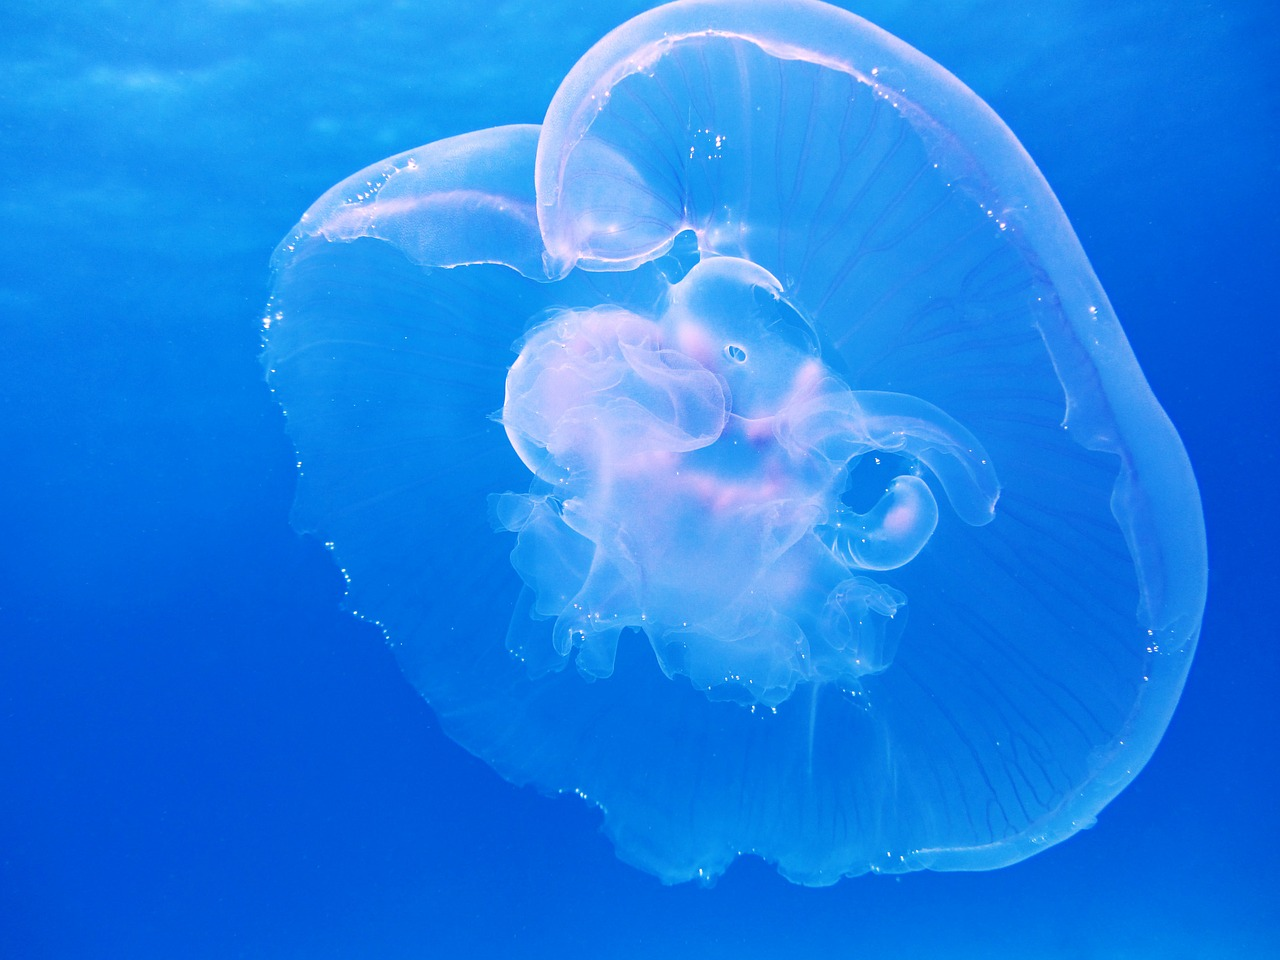 eclipse of moon jellyfish